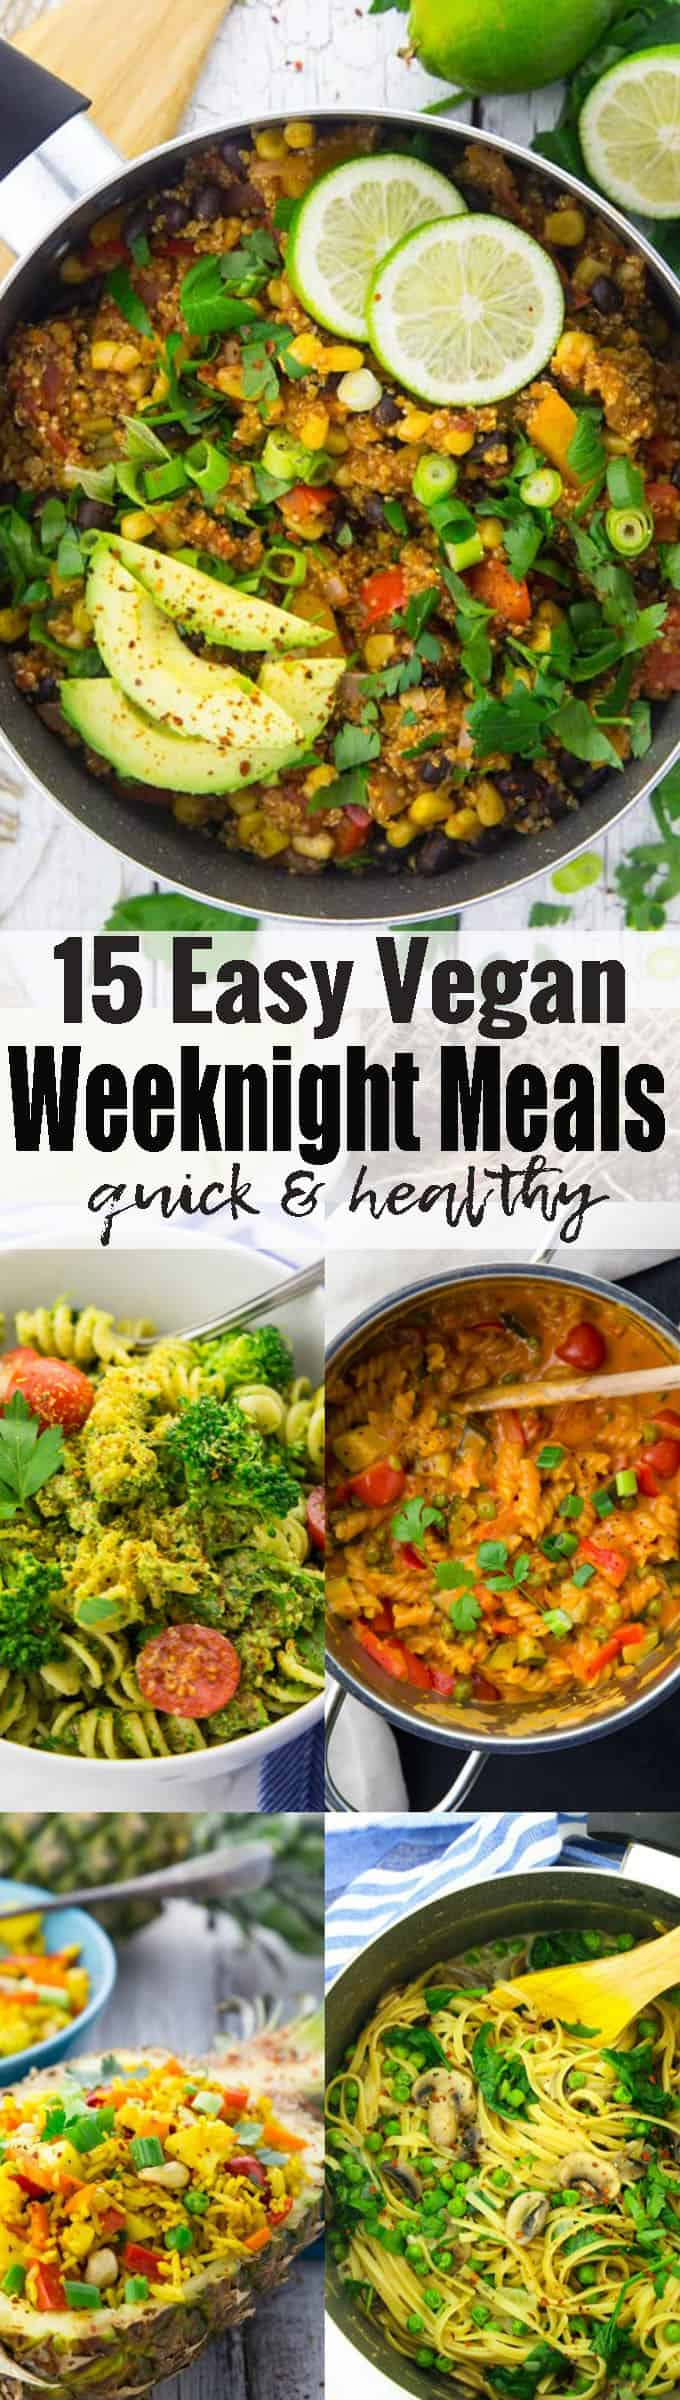 These 15 vegan weeknight meals are easy, healthy, and ready in no time! This post is perfect when you like to include more vegan and vegetarian recipes into your diet! More than 2 weeks of delicious vegan dinner recipes! <3